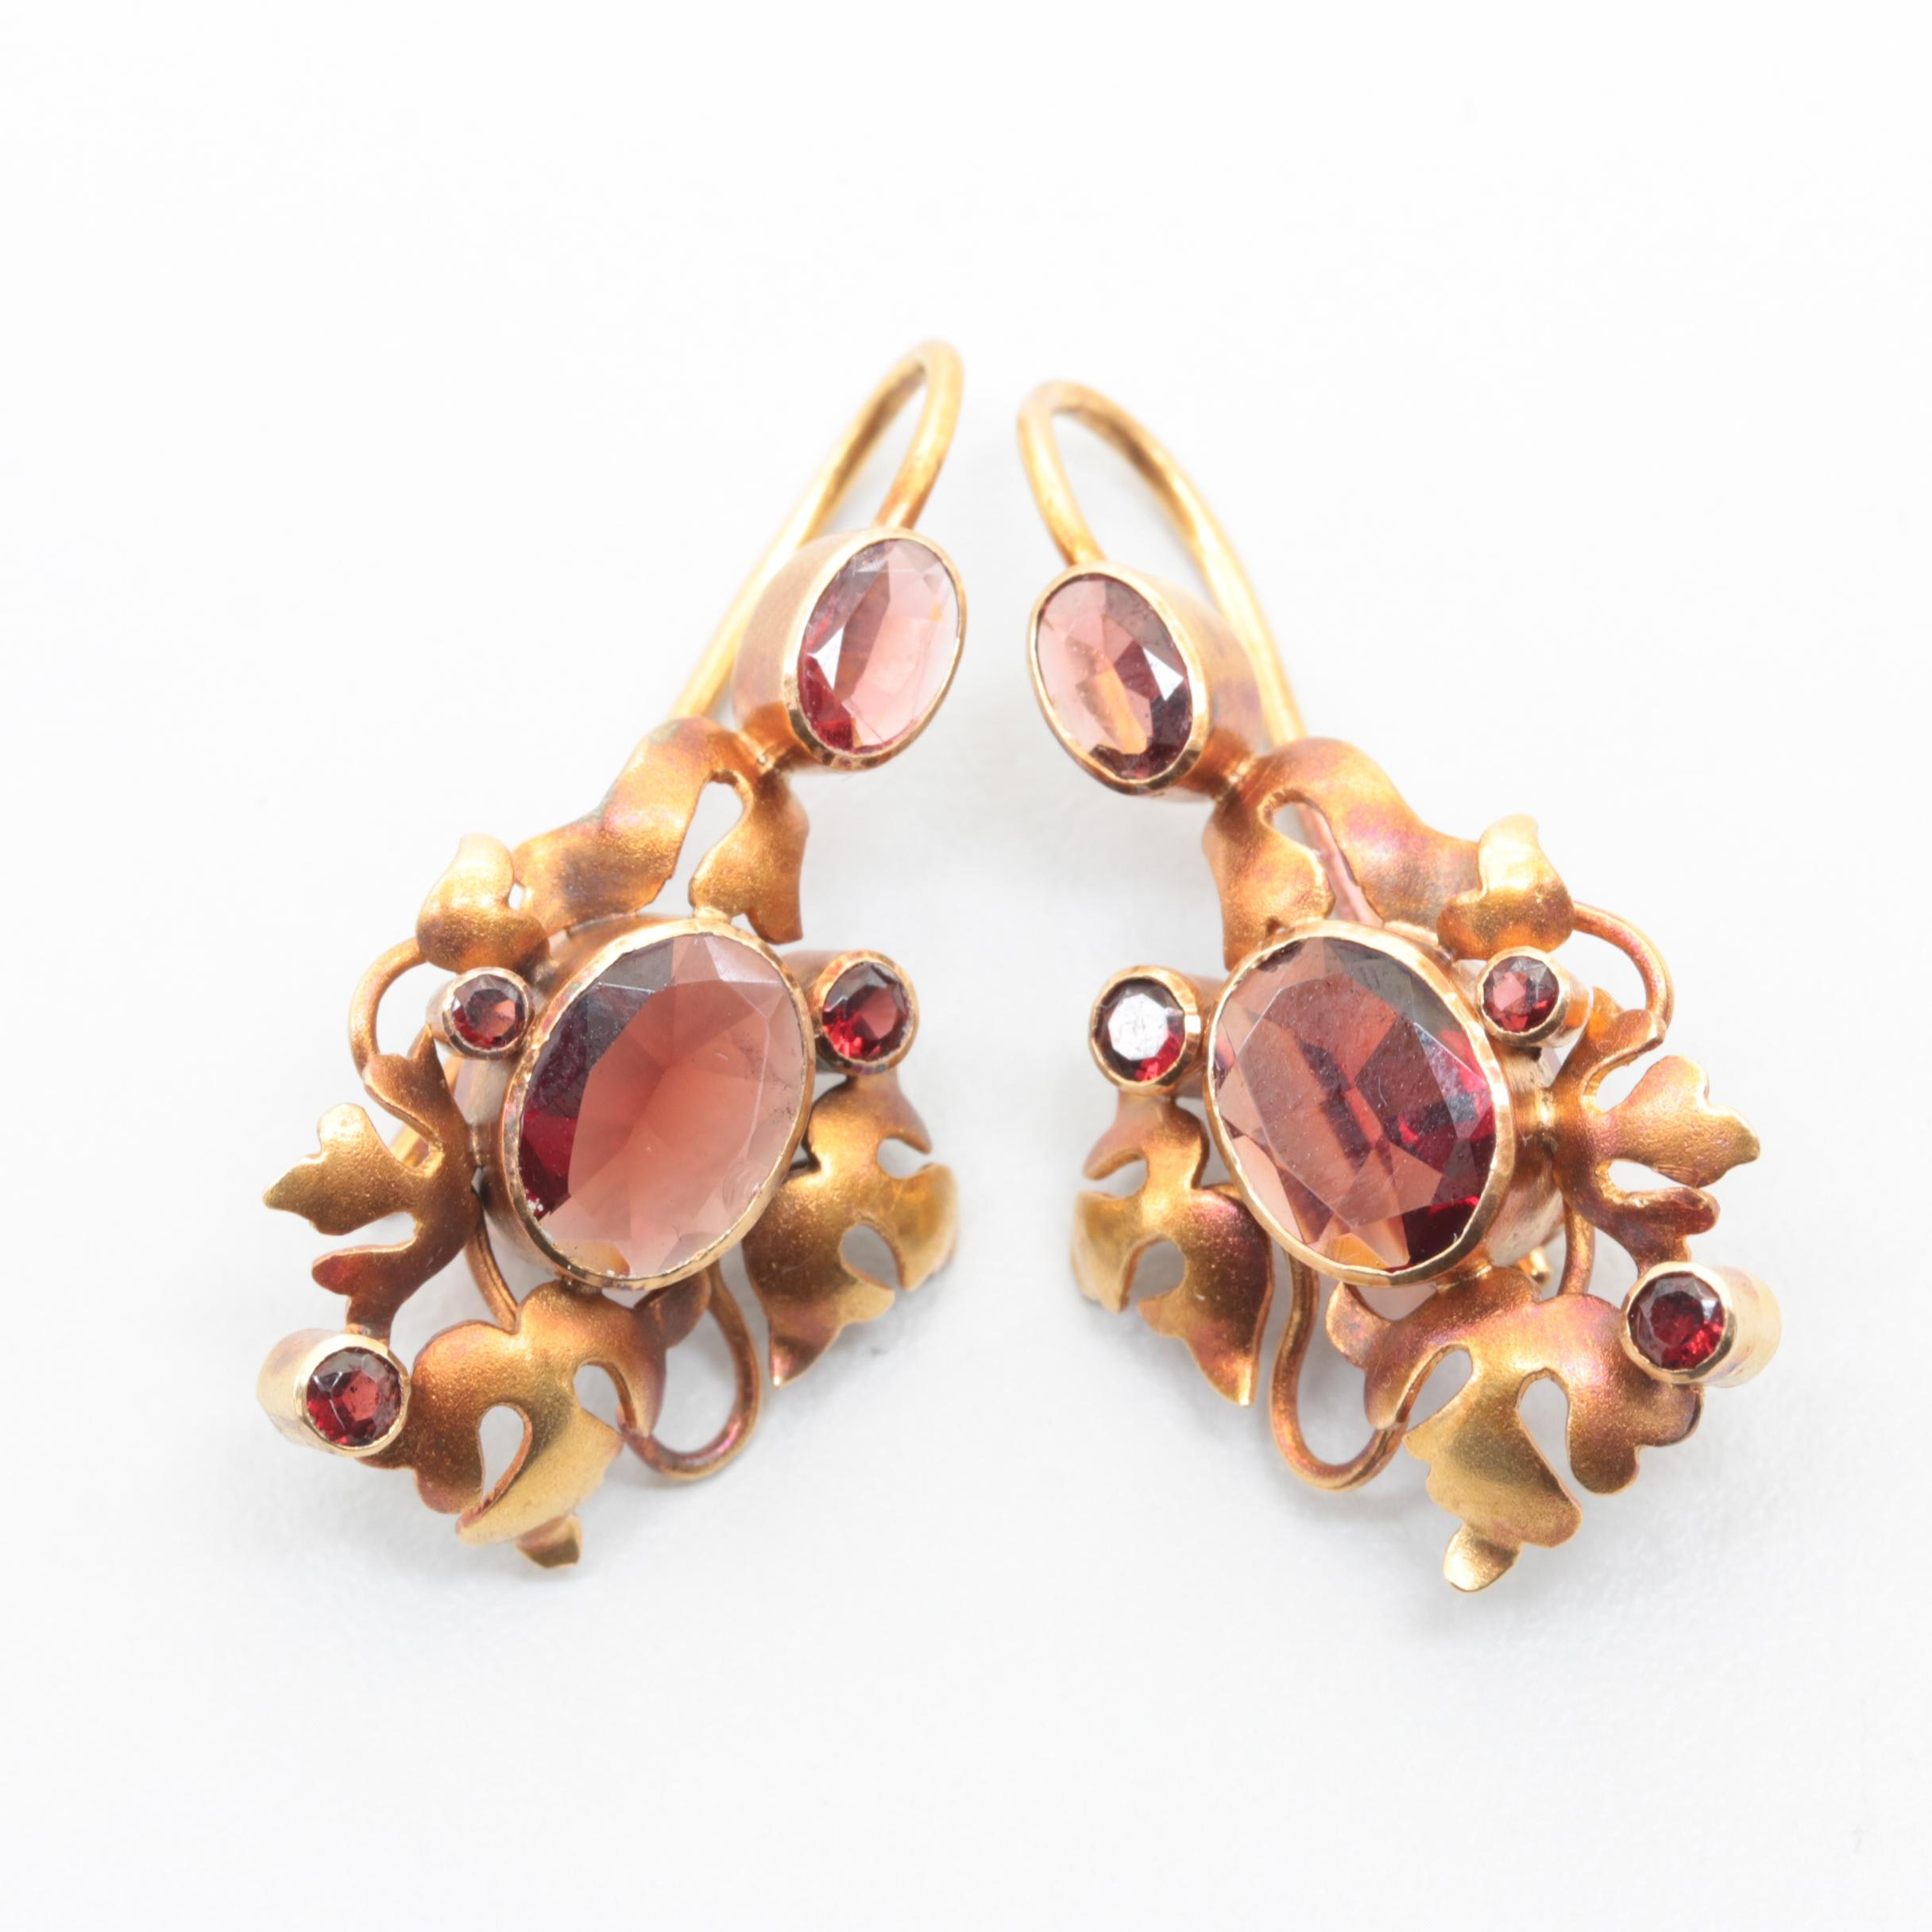 Victorian 18K Yellow Gold Garnet Earrings